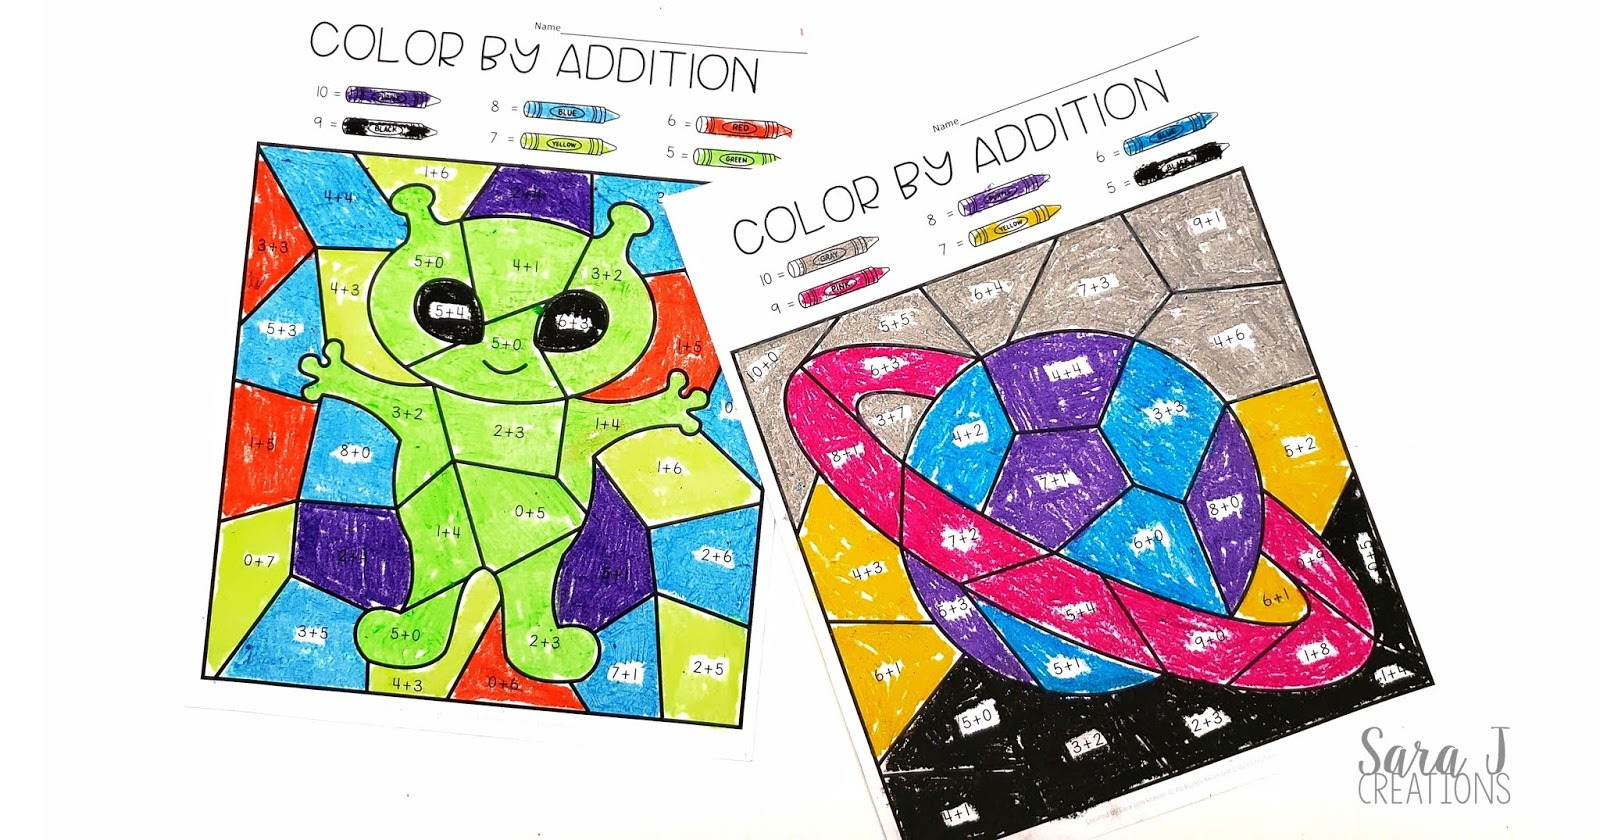 medium resolution of Color by Addition Free Space Themed Printable   Sara J Creations